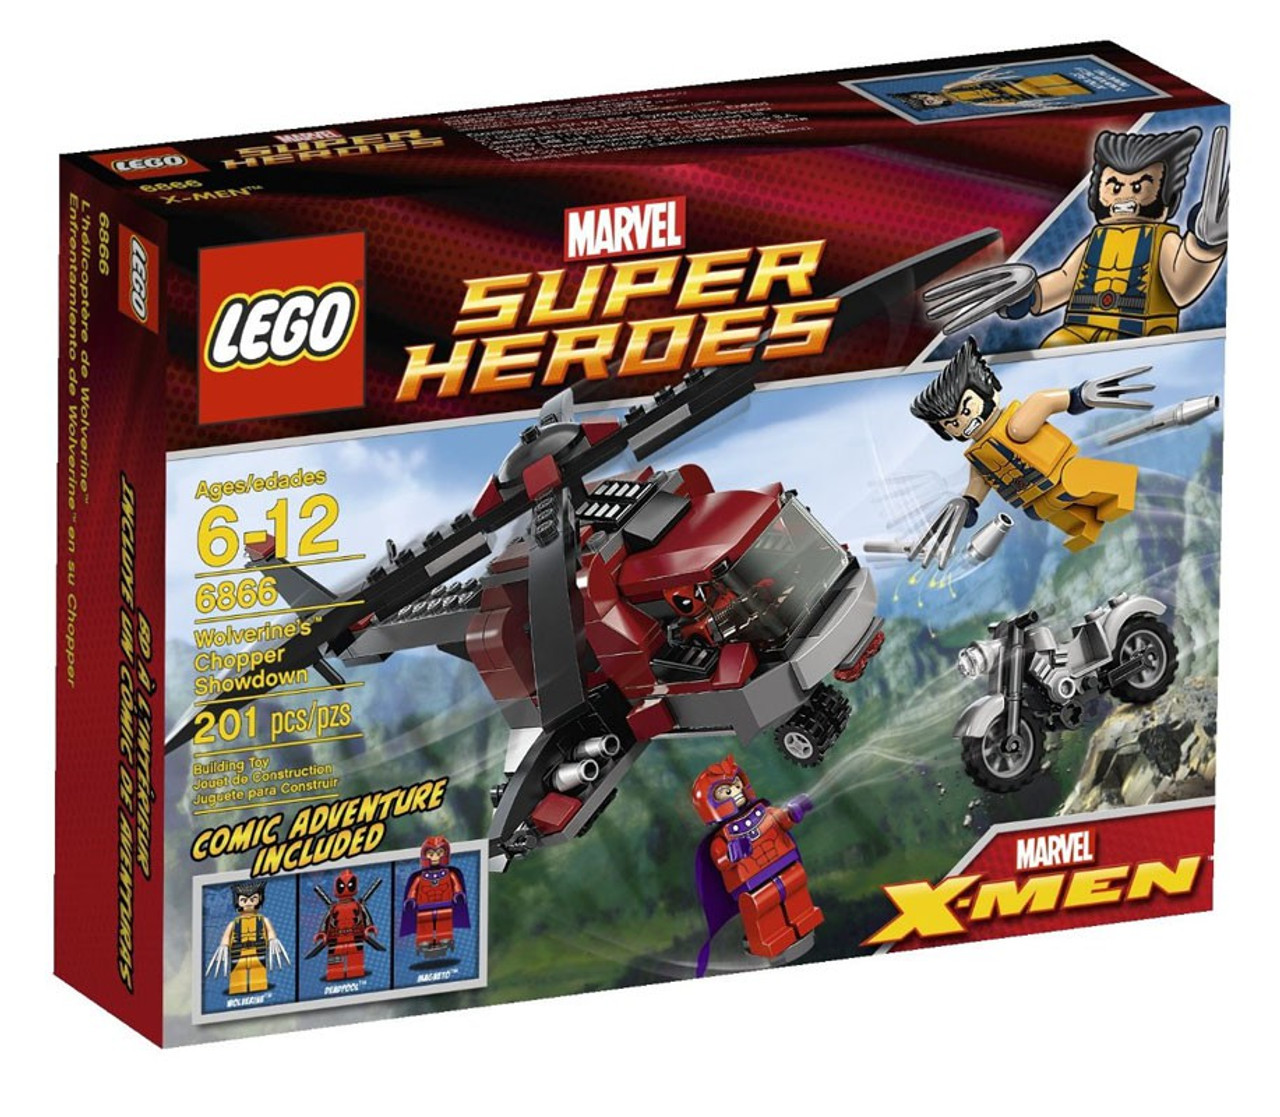 Lego Marvel Super Heroes X Men Wolverines Chopper Showdown Set 6866